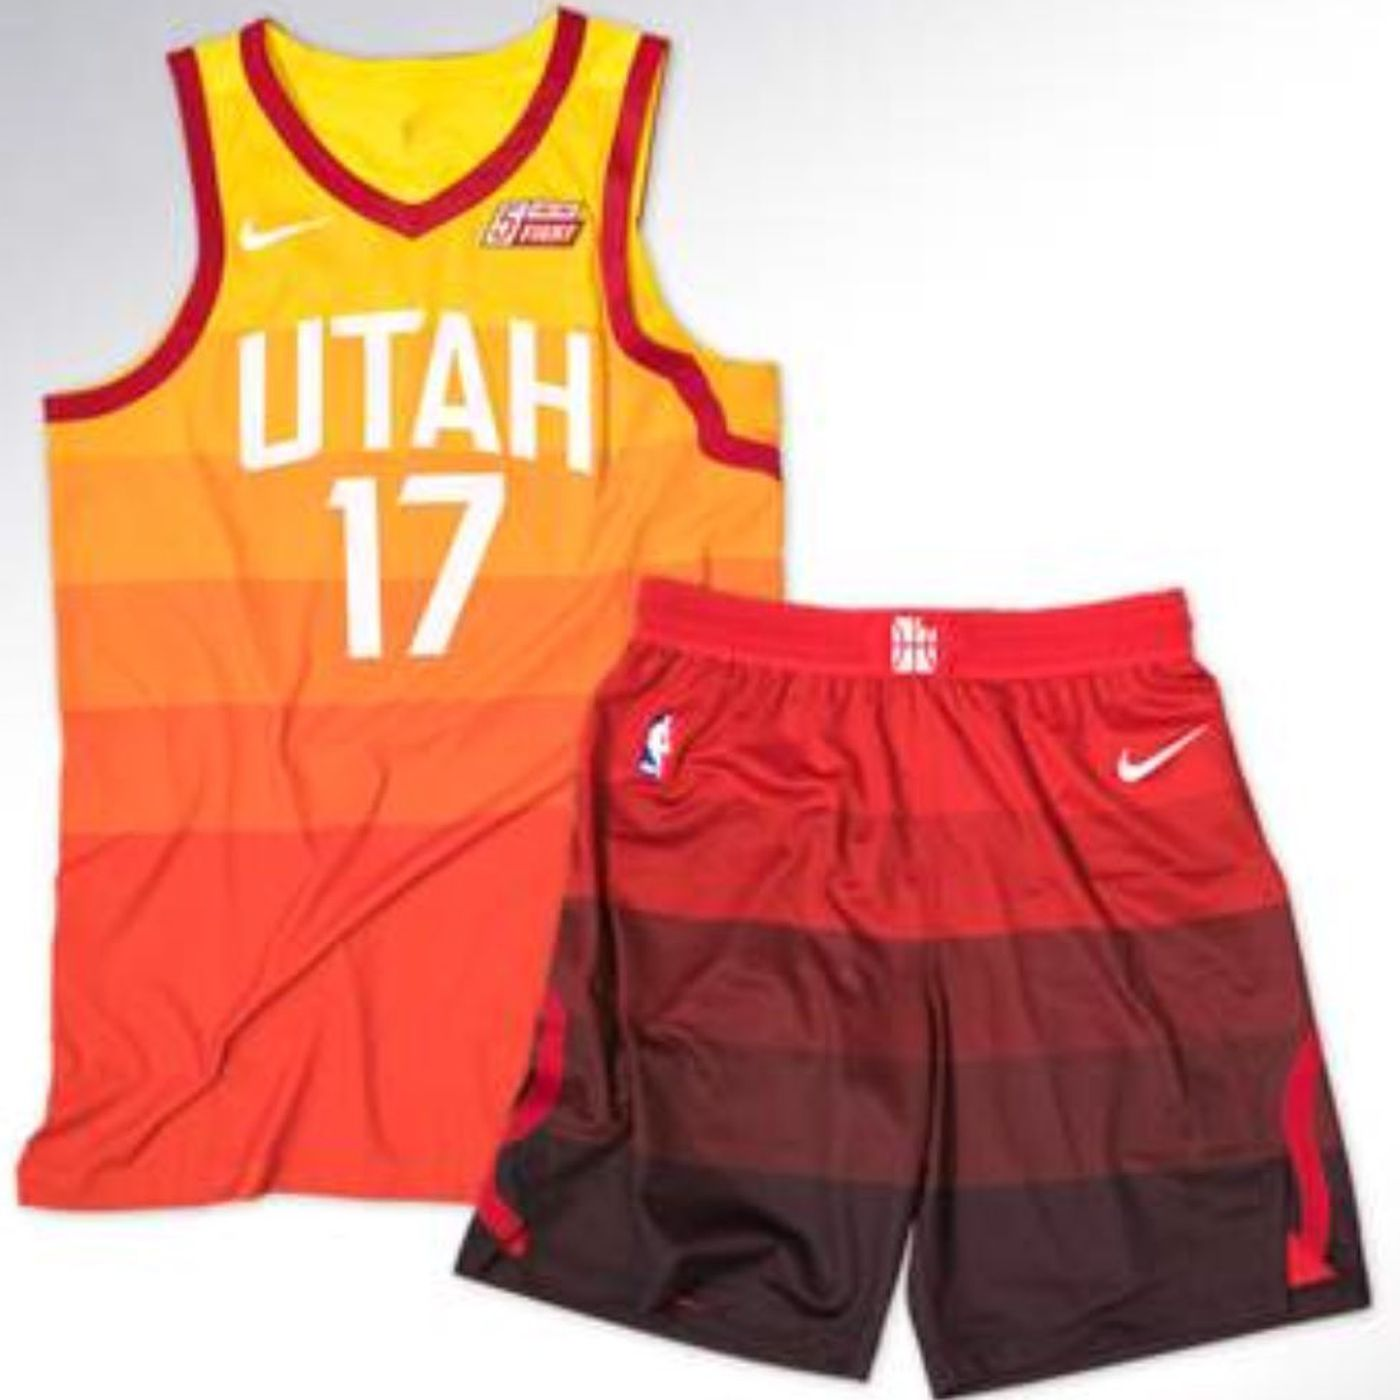 purchase cheap bc453 91568 New Utah Jazz uniforms pay homage to Utah's sunset and have ...